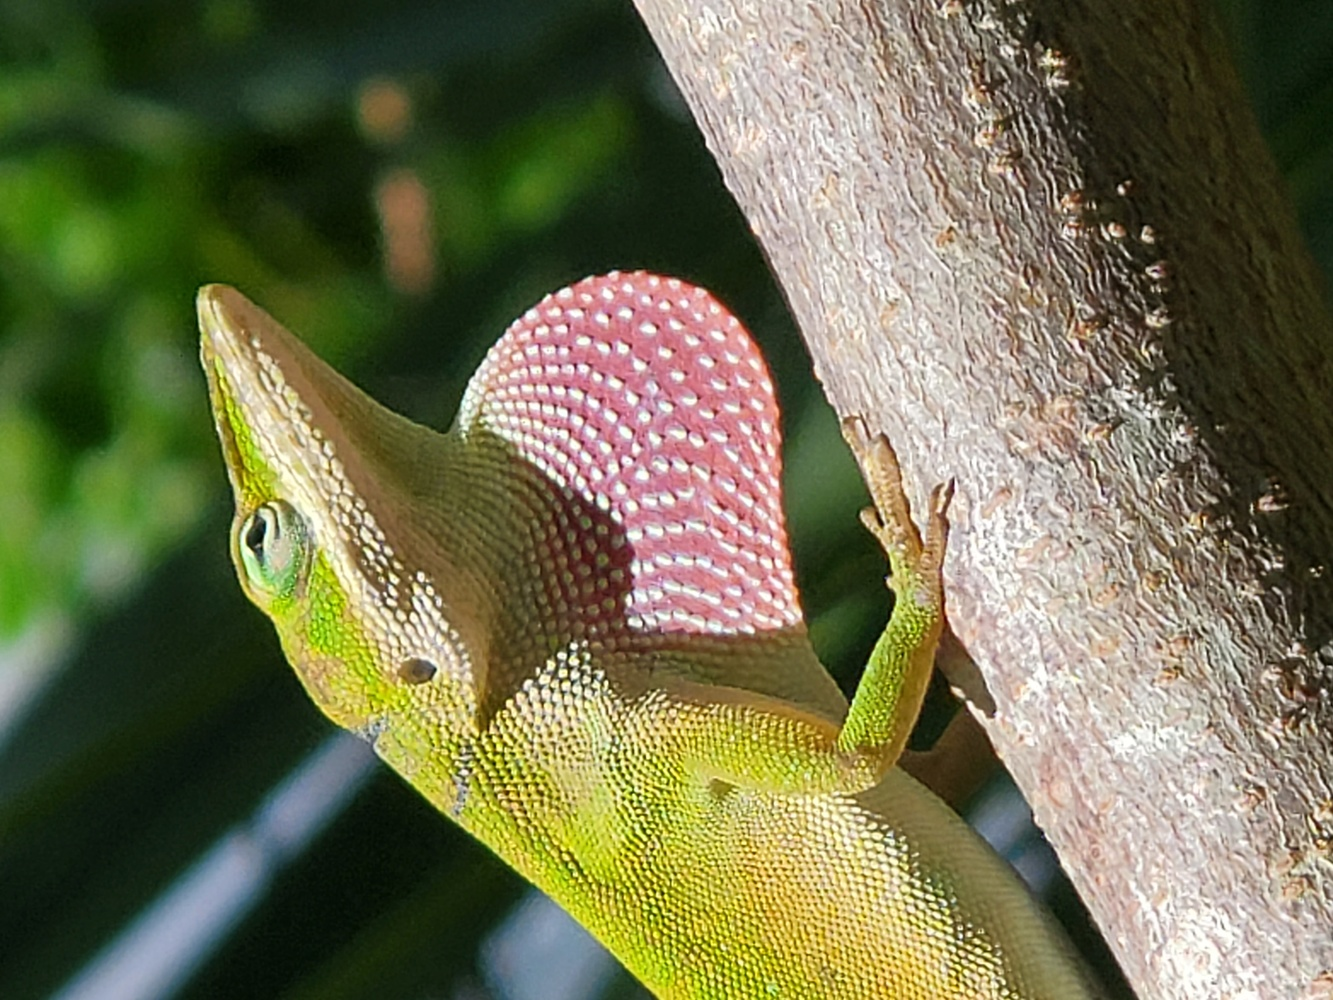 Lizard Warning by Kathy DITTON